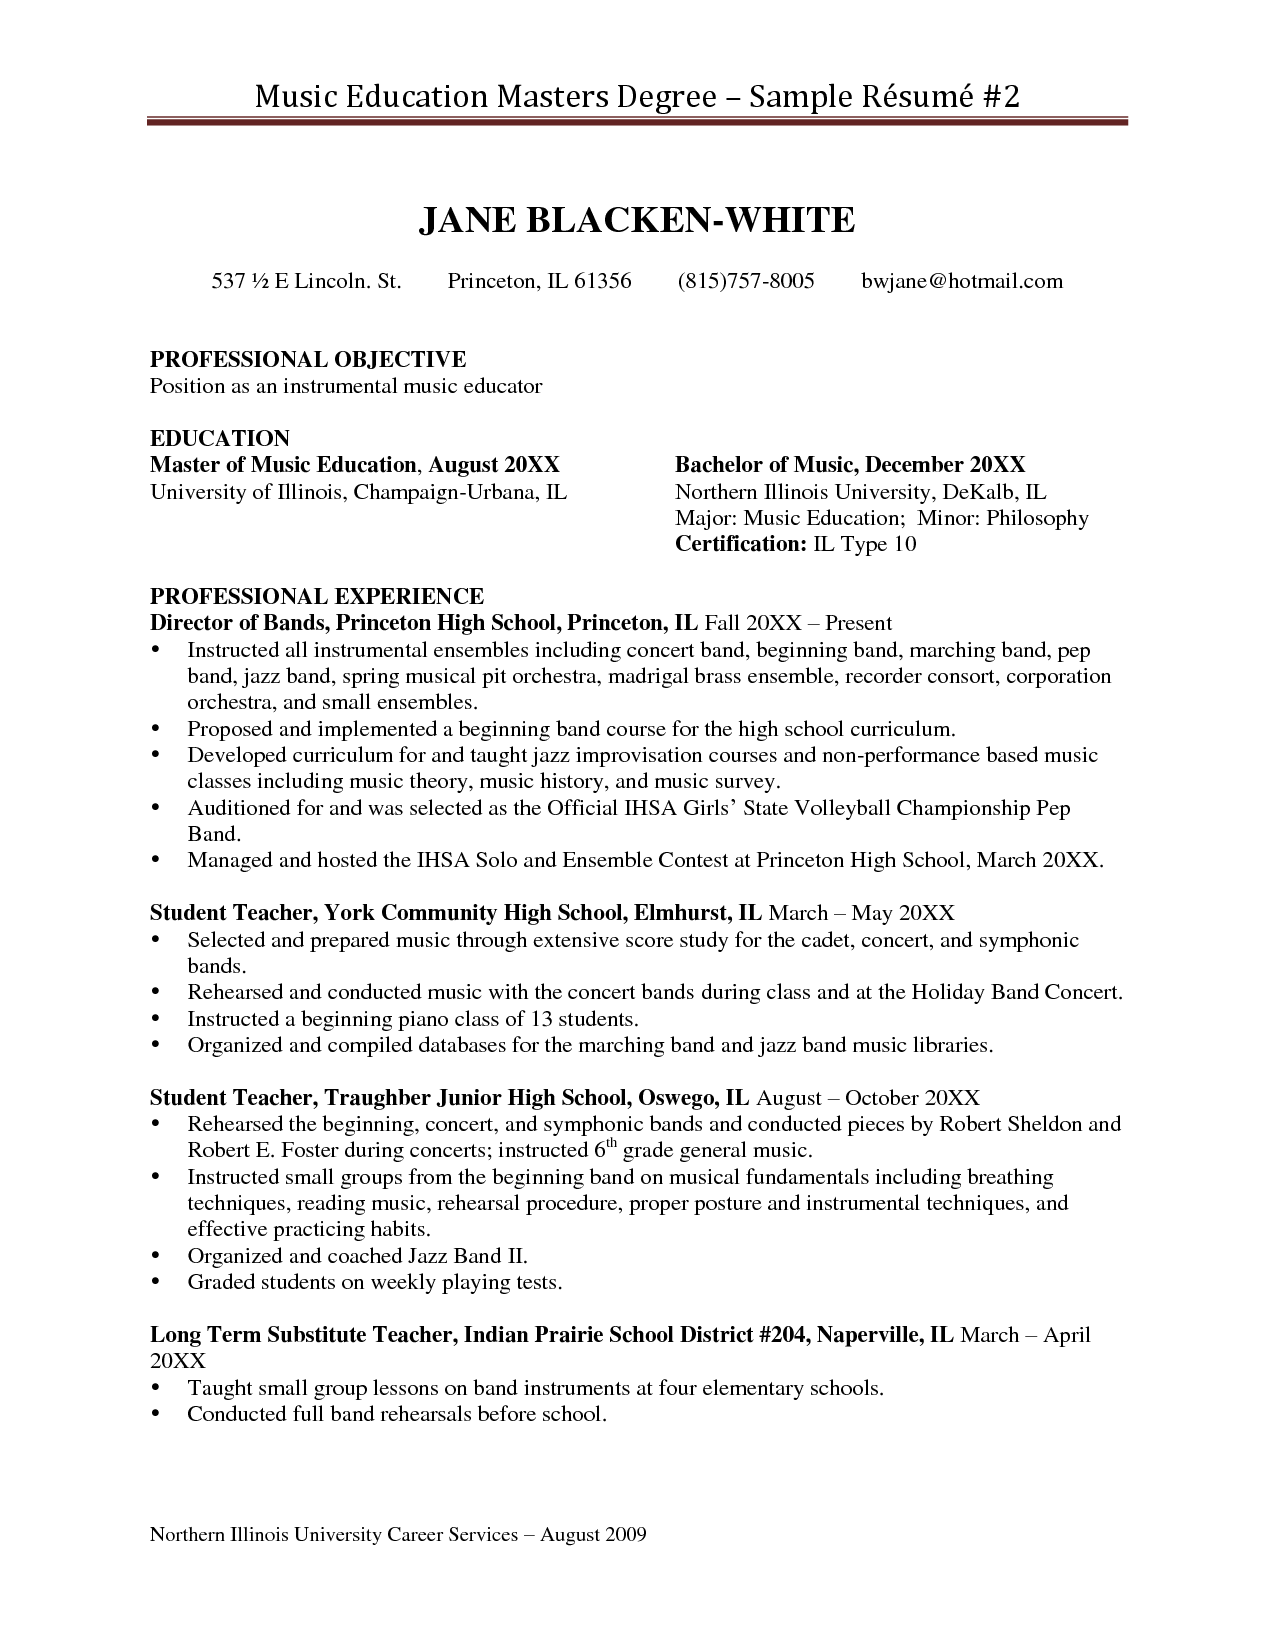 How To Put Bachelor Degree On Resume Graduate Teachers Resume Example Google Search Getting